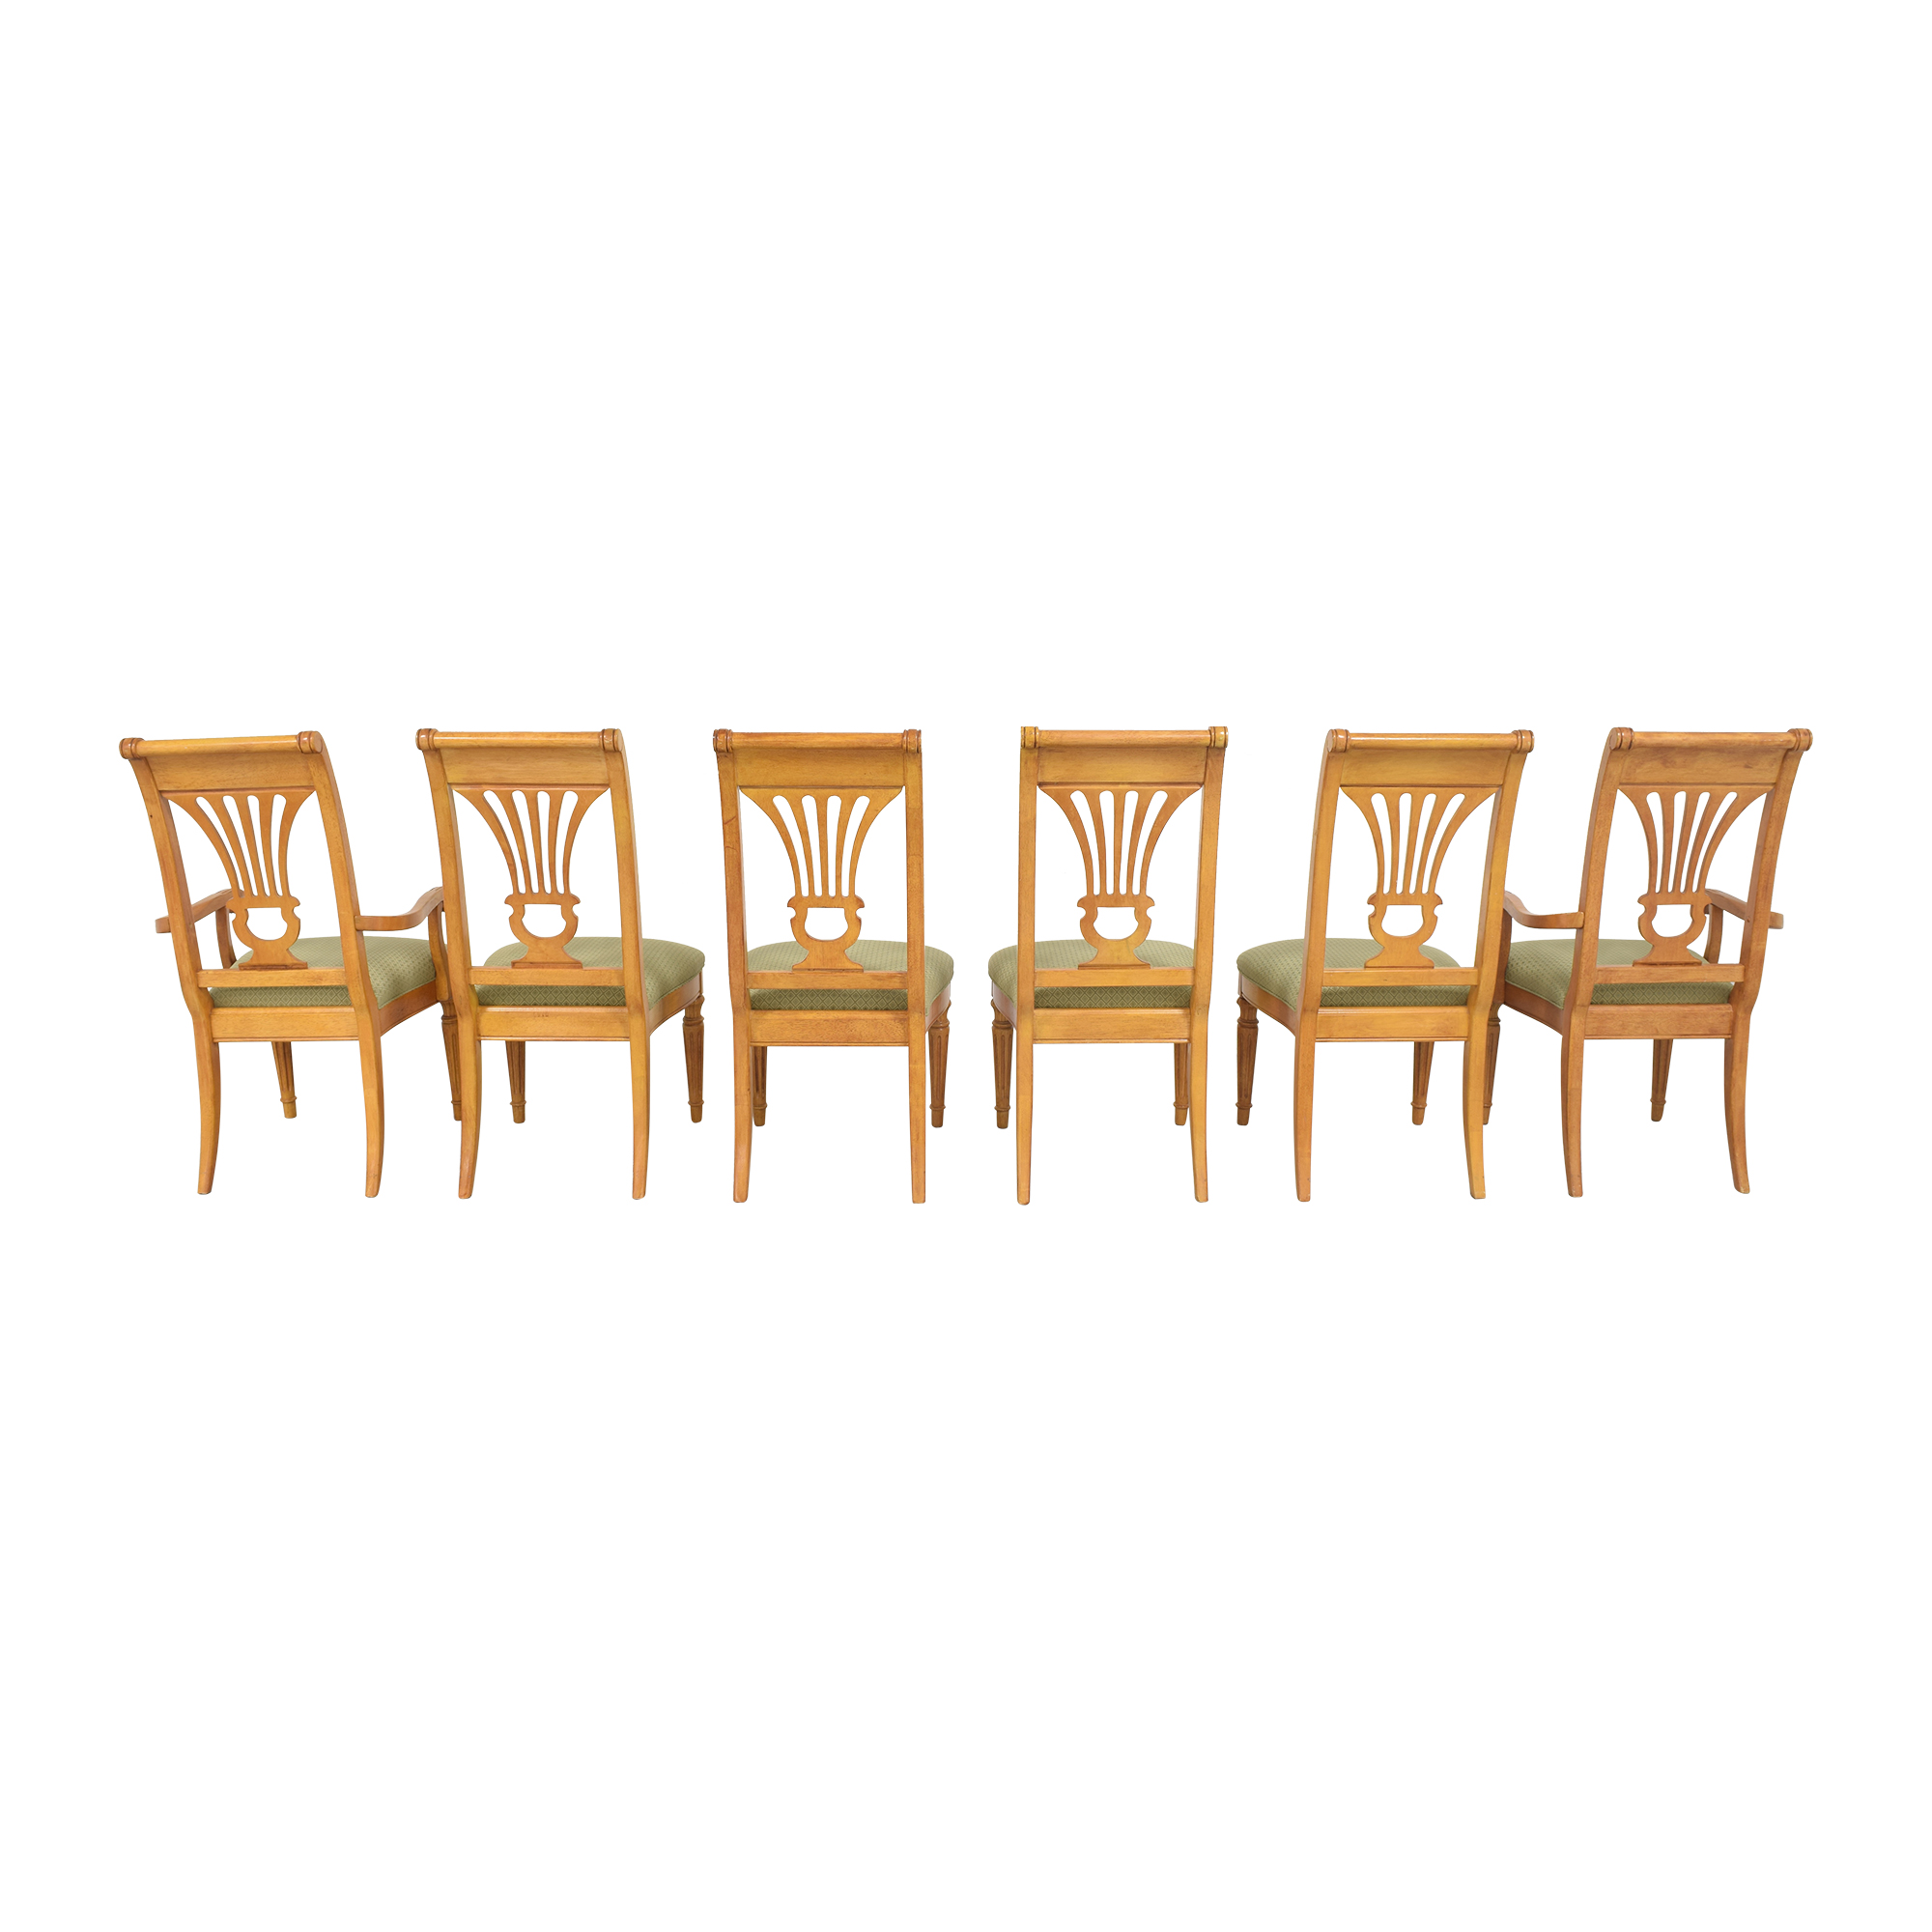 Universal Furniture Universal Furniture Upholstered Dining Chairs for sale